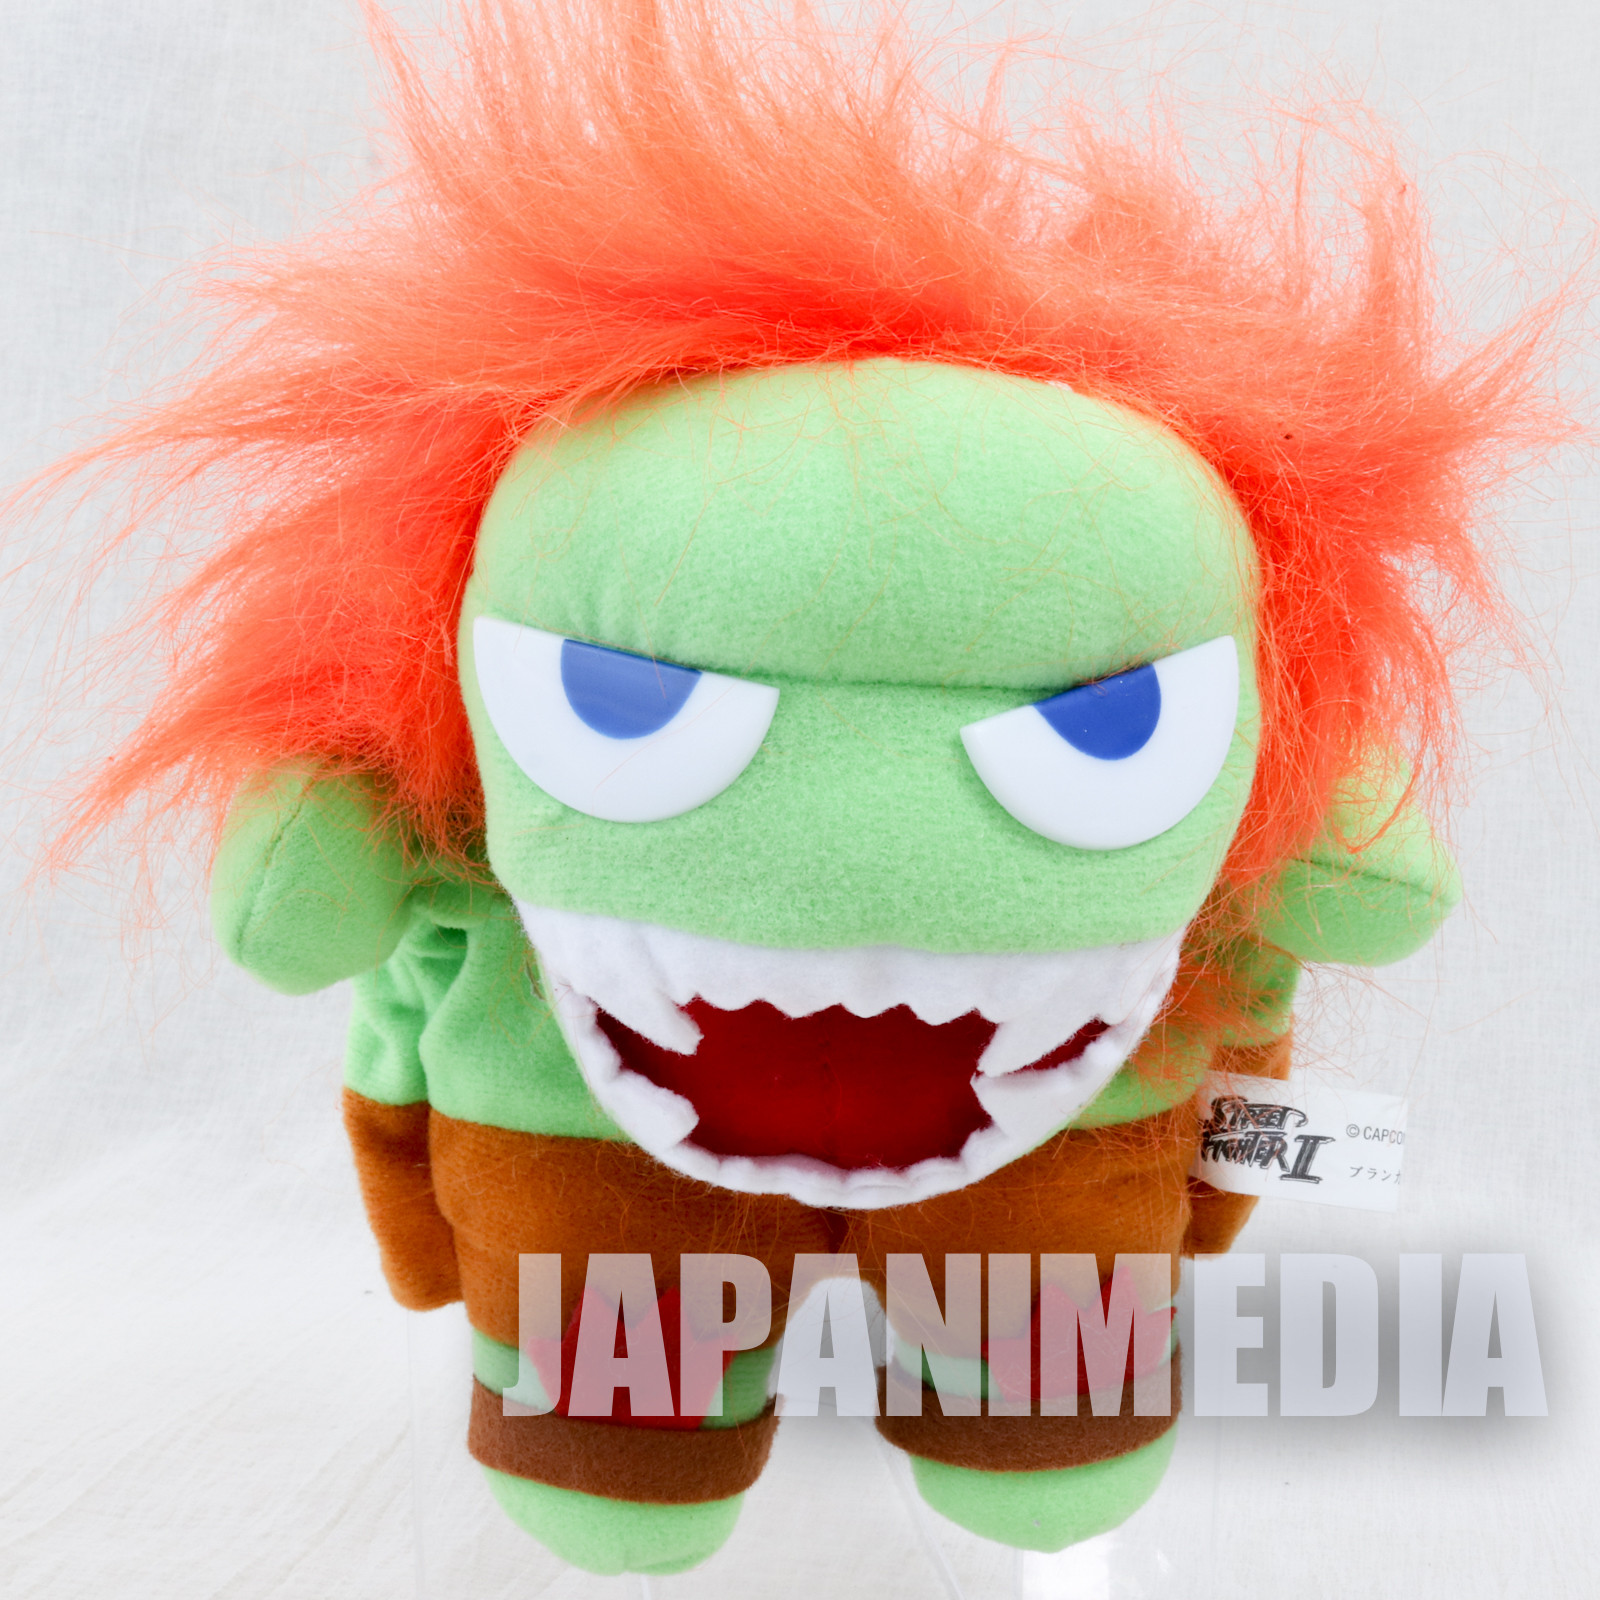 Street Fighter 2 Blanka Hand Puppet Plush Doll Capcom Character JAPAN GAME